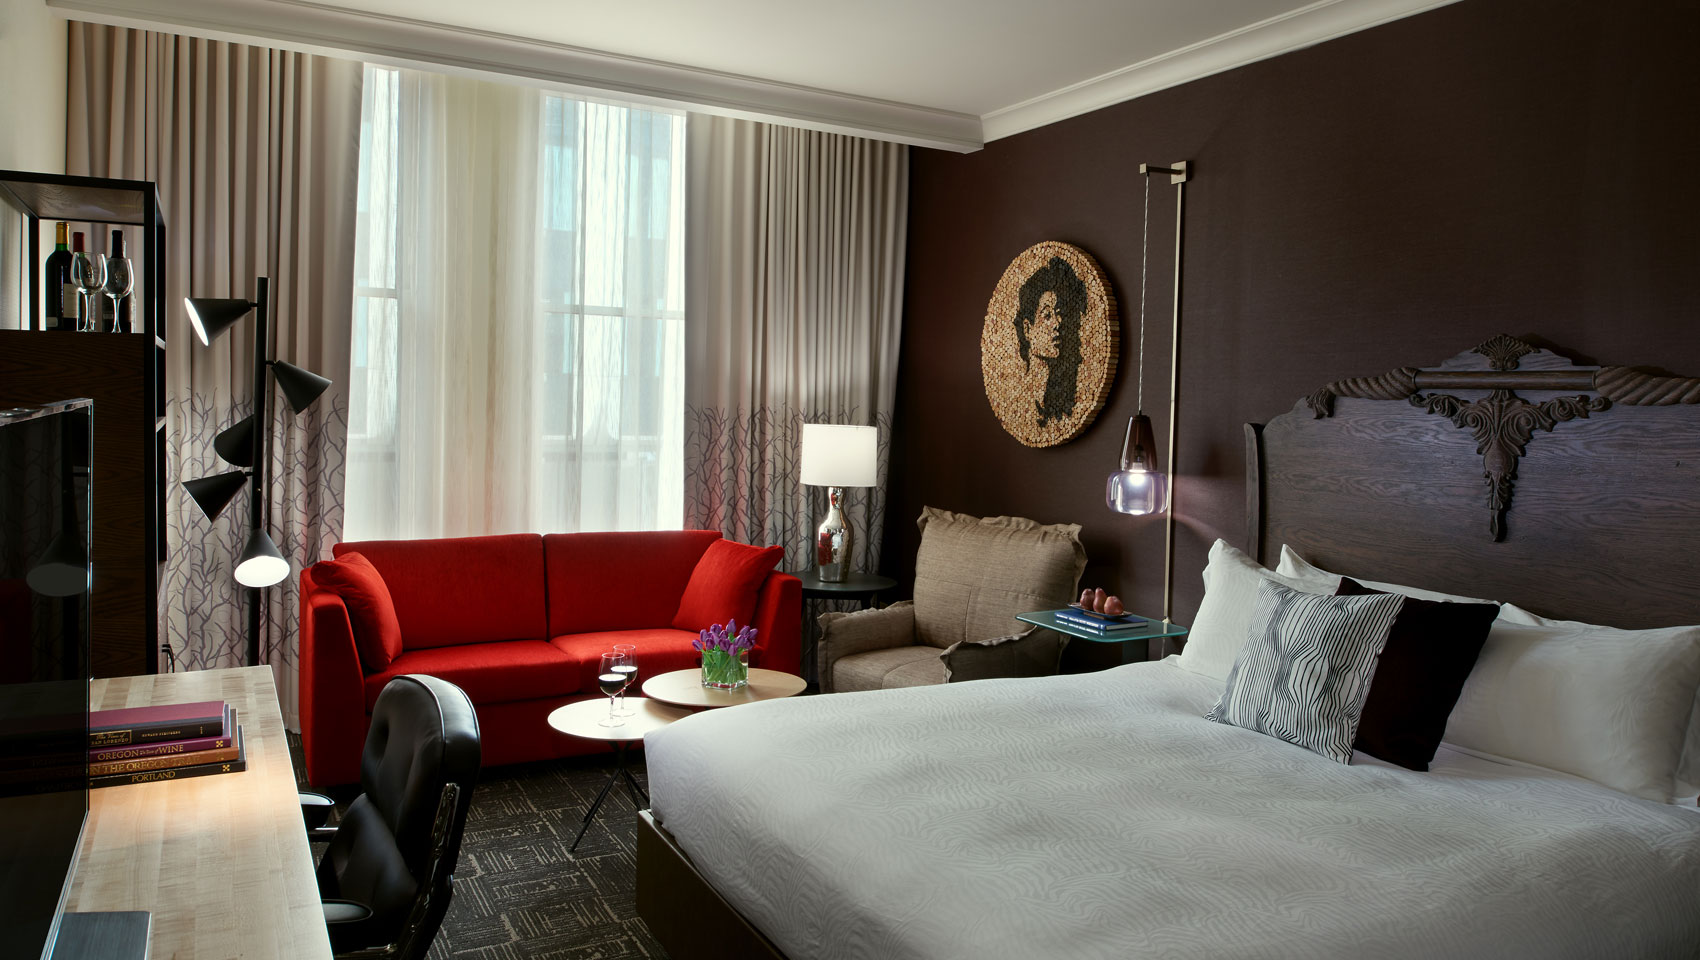 King Guestrooms at Kimpton Hotel Vintage Portland